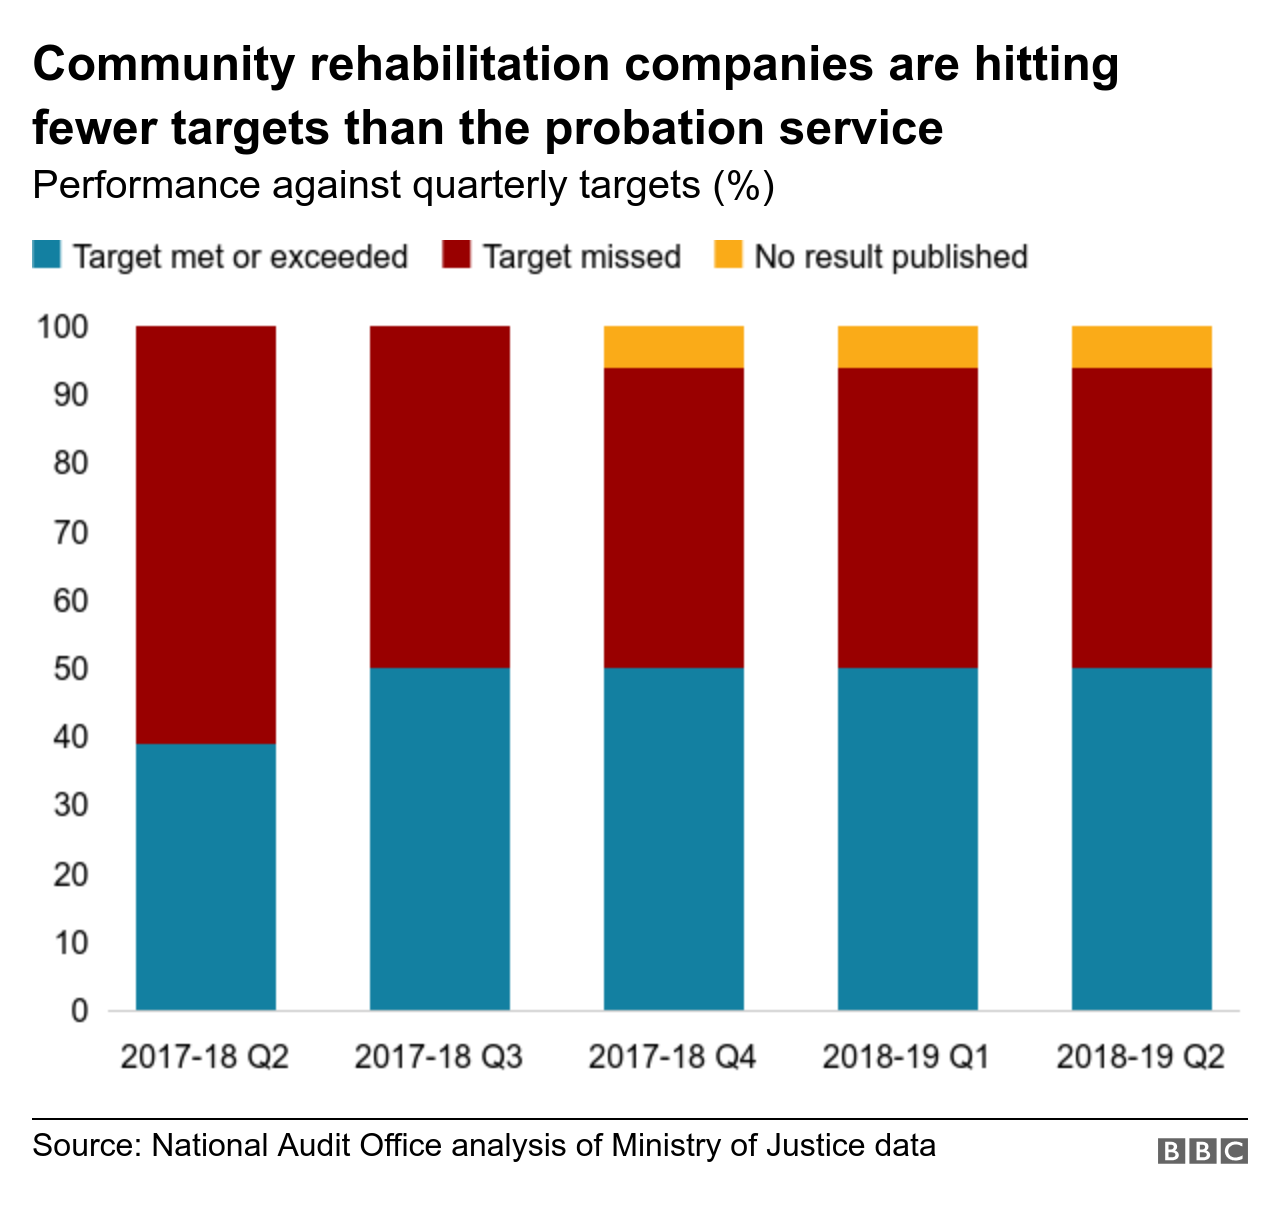 Chart showing how community rehabilitation services are missing more targets